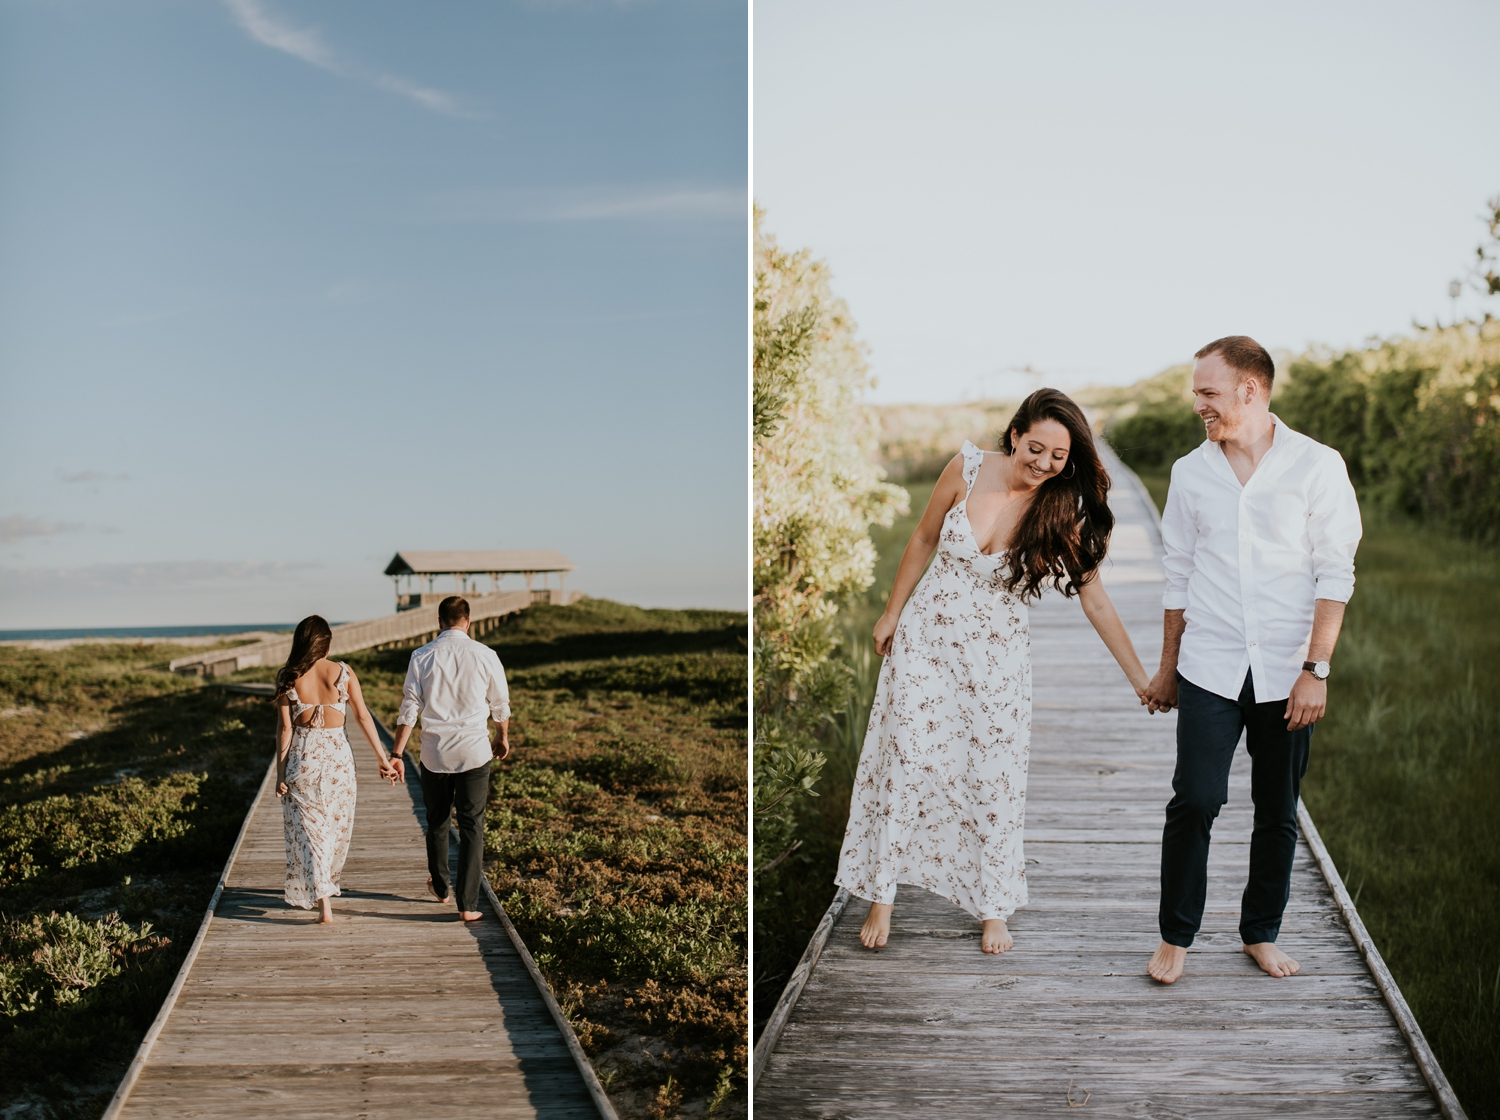 ho-hum-beach-boat-ride-engagement-photography-bellport-new-york 5.jpg